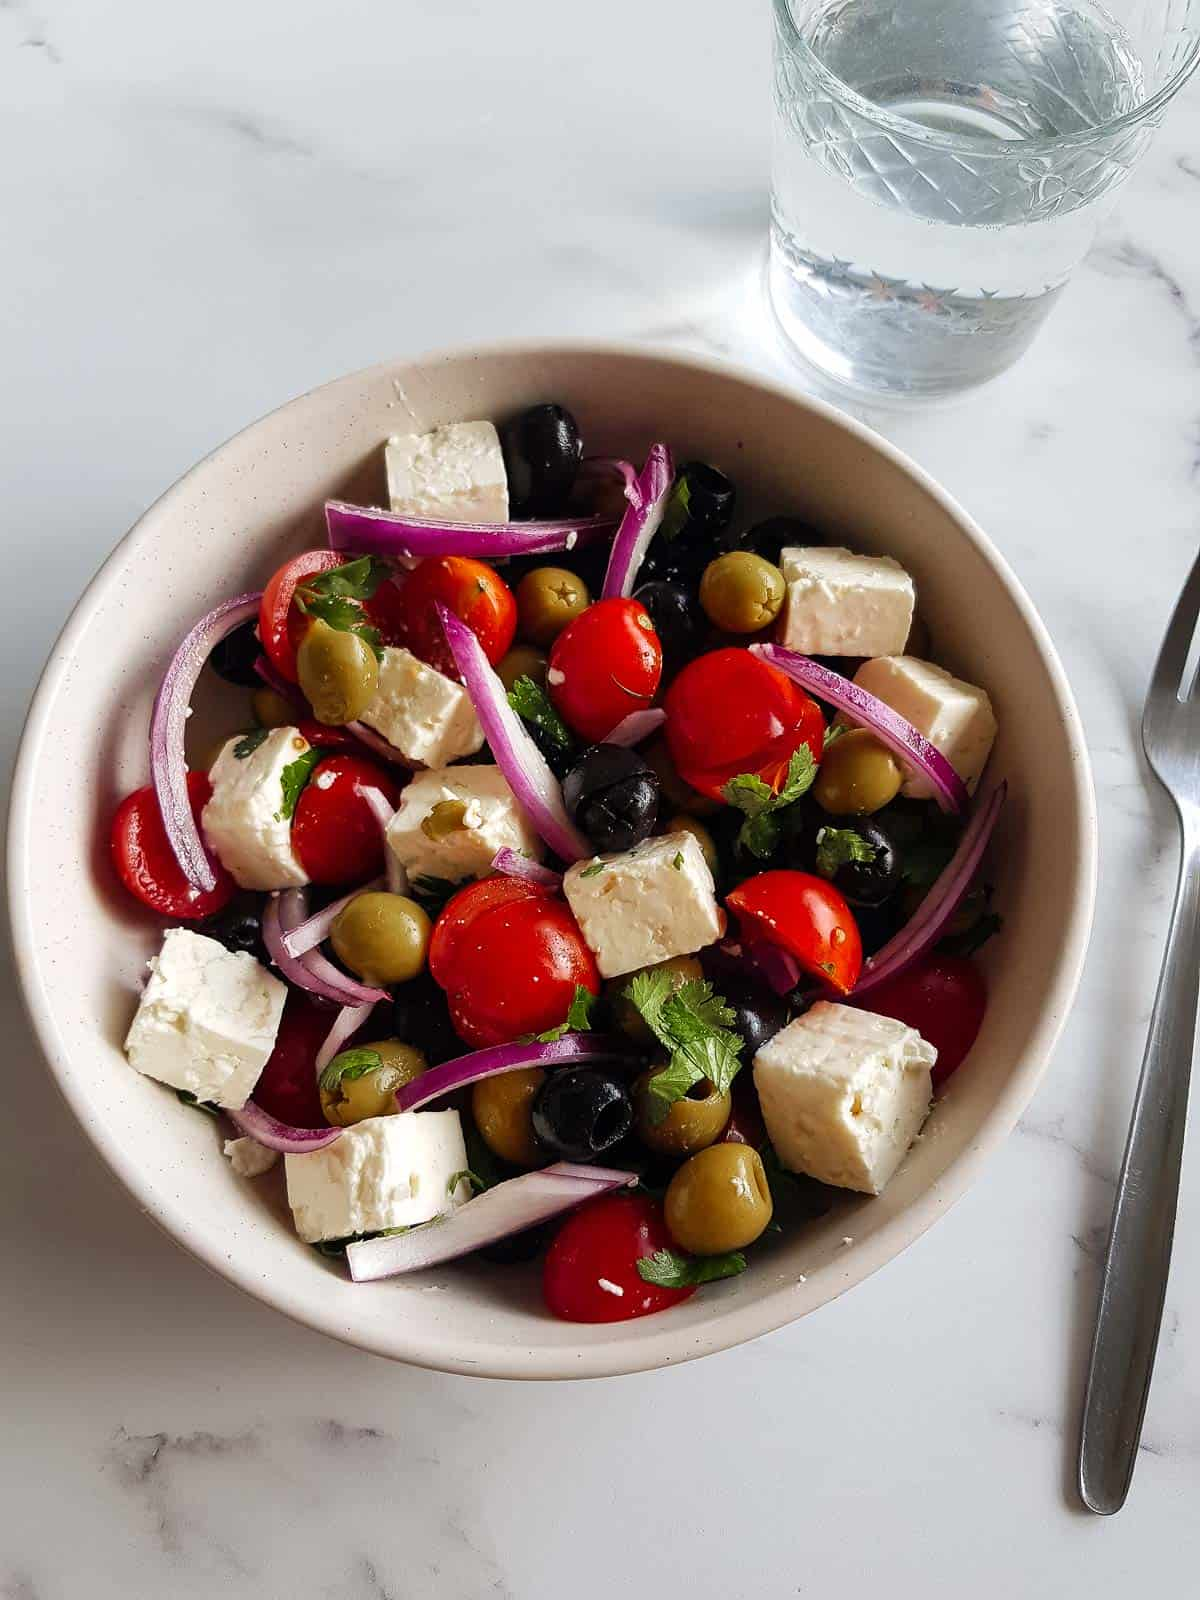 Olive salad in a bowl with a glass of water and a fork on the side.